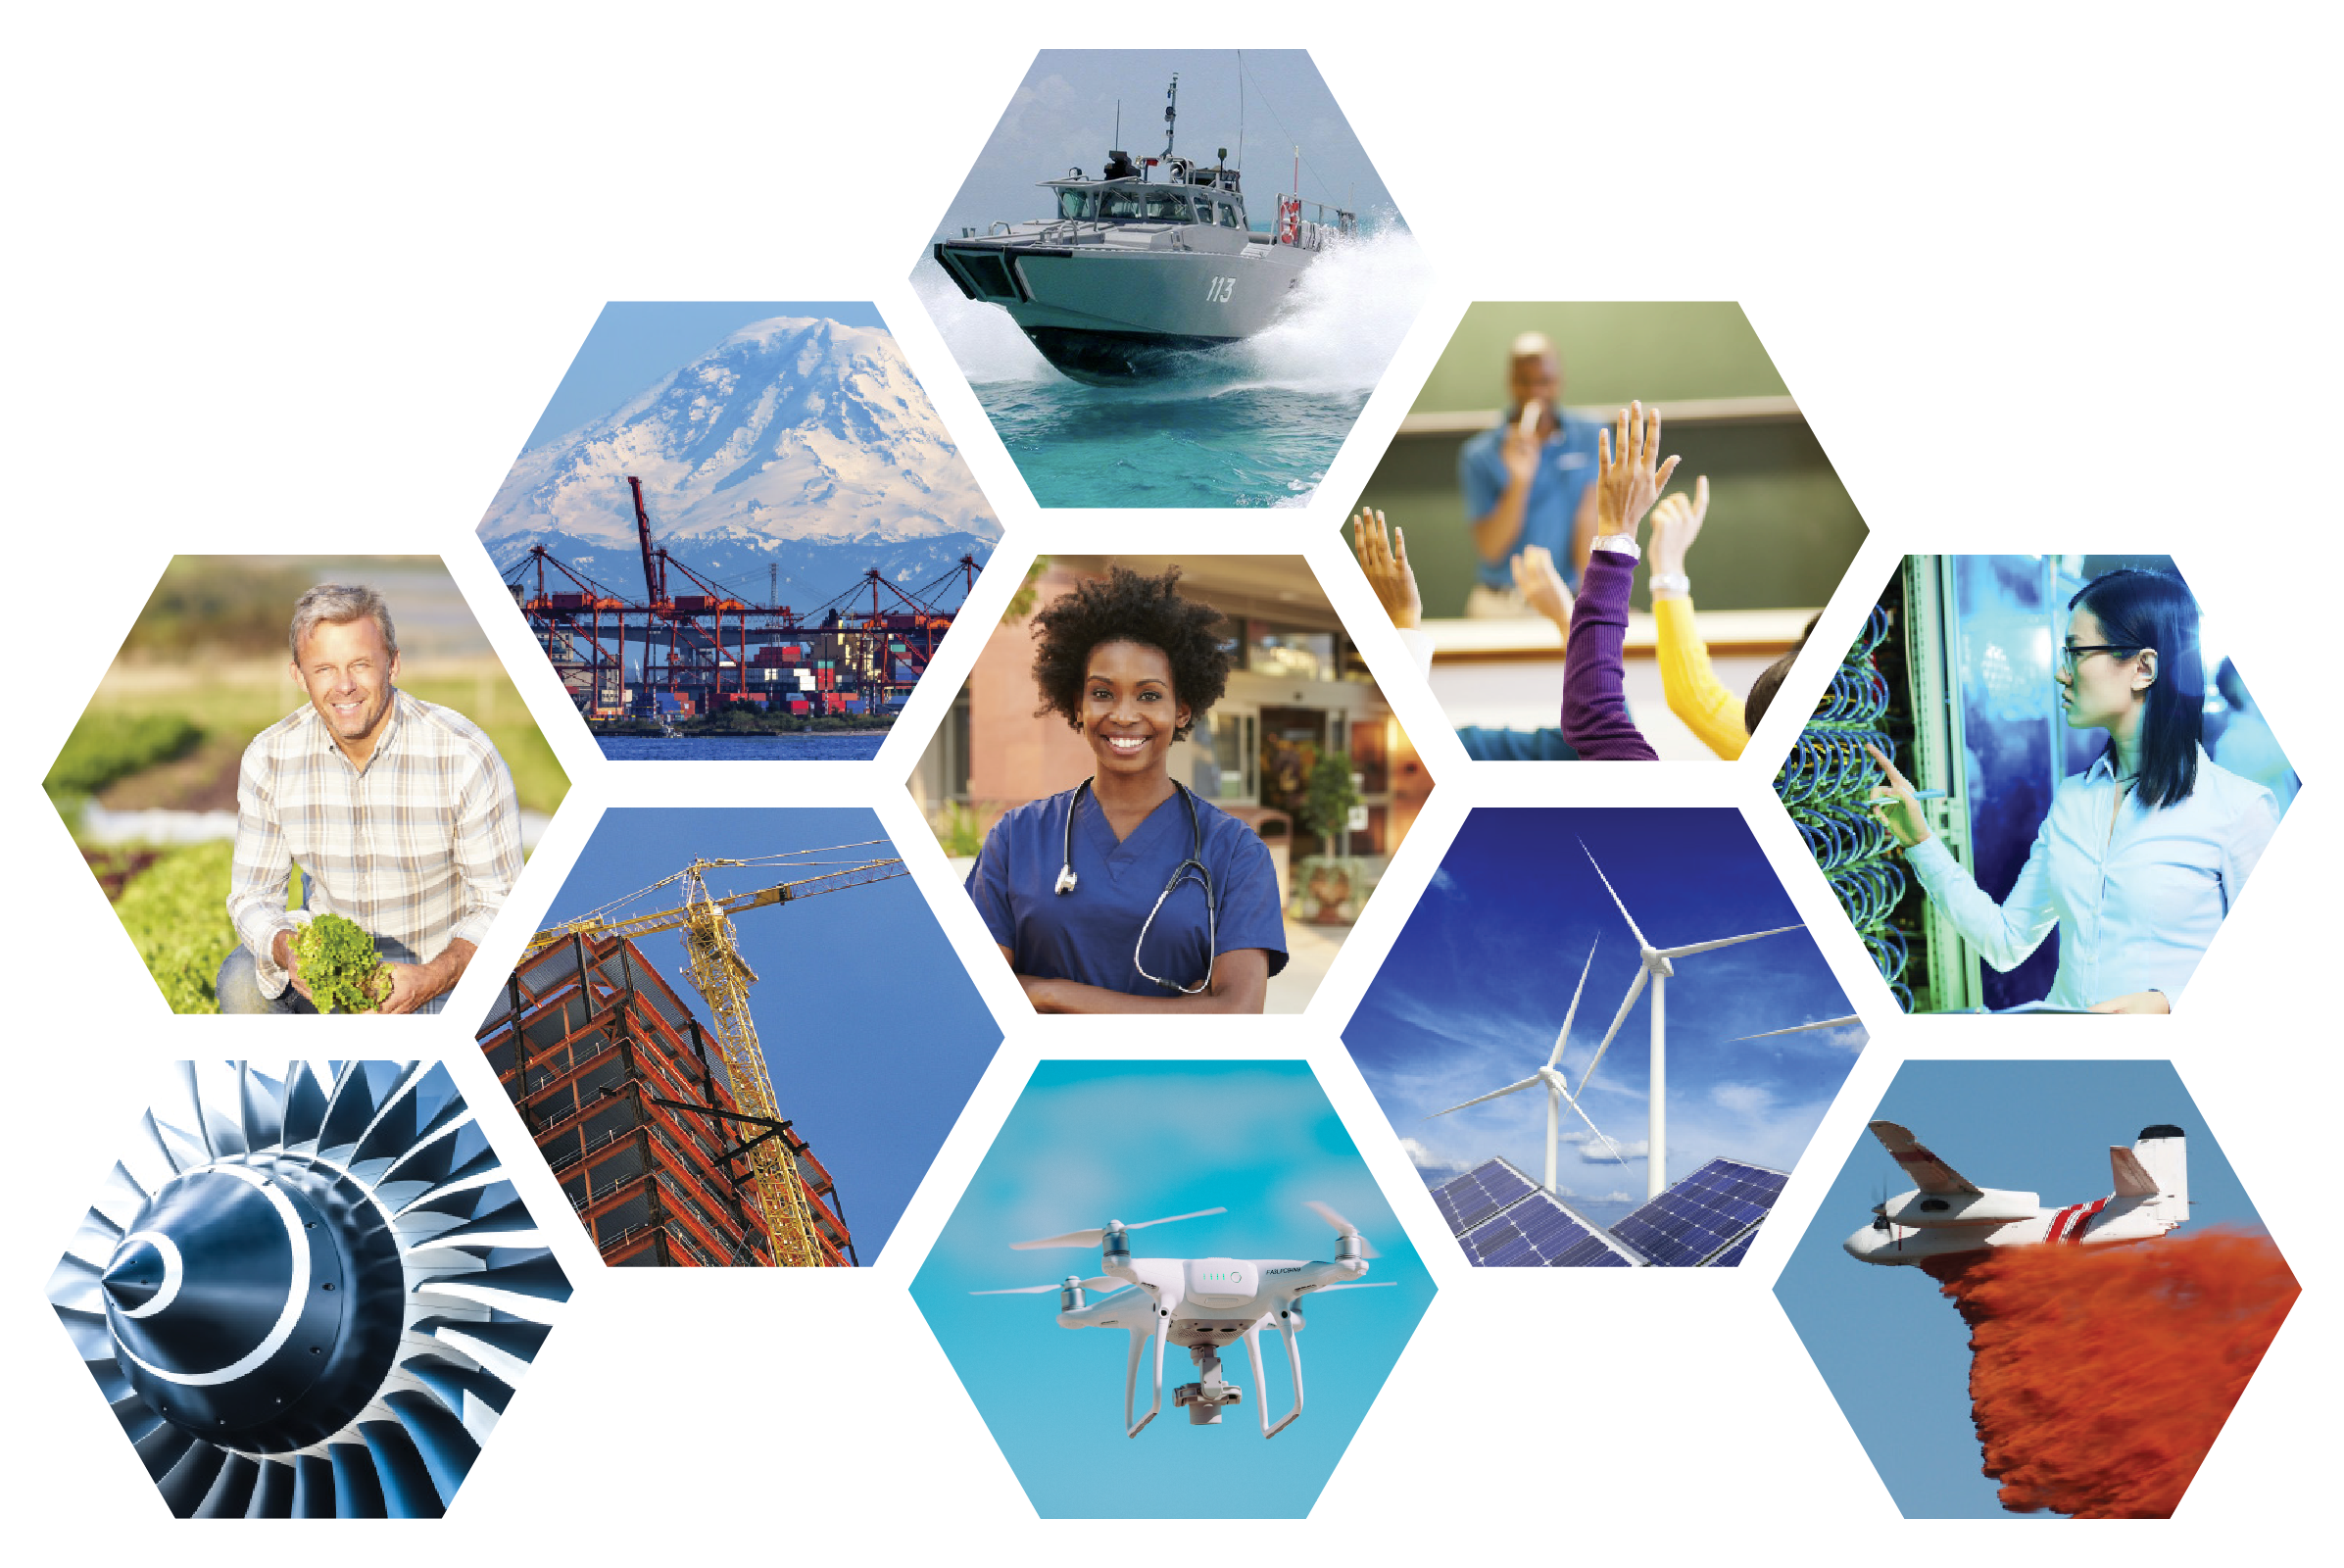 Grid of hexagon images representing industries the Centers of Excellence represent including aerospace, education, construction, and healthcare.